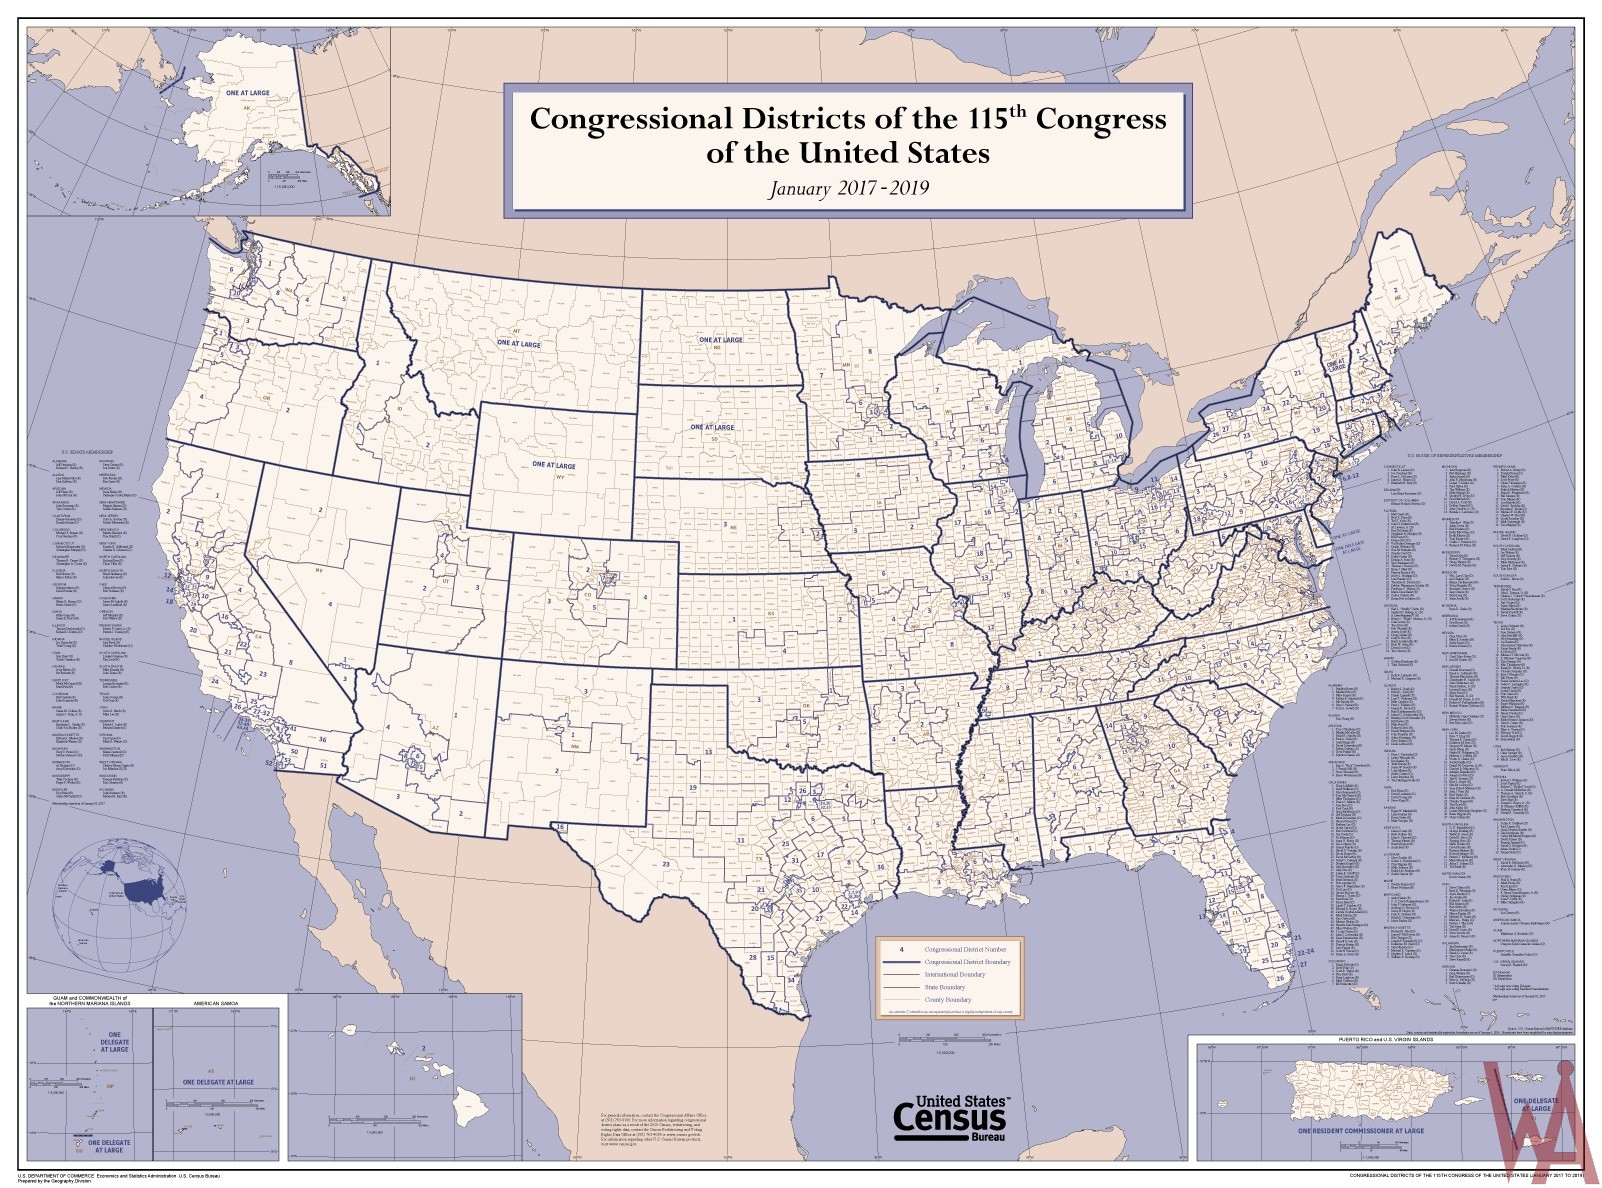 High Quality Congressional District Map of the US